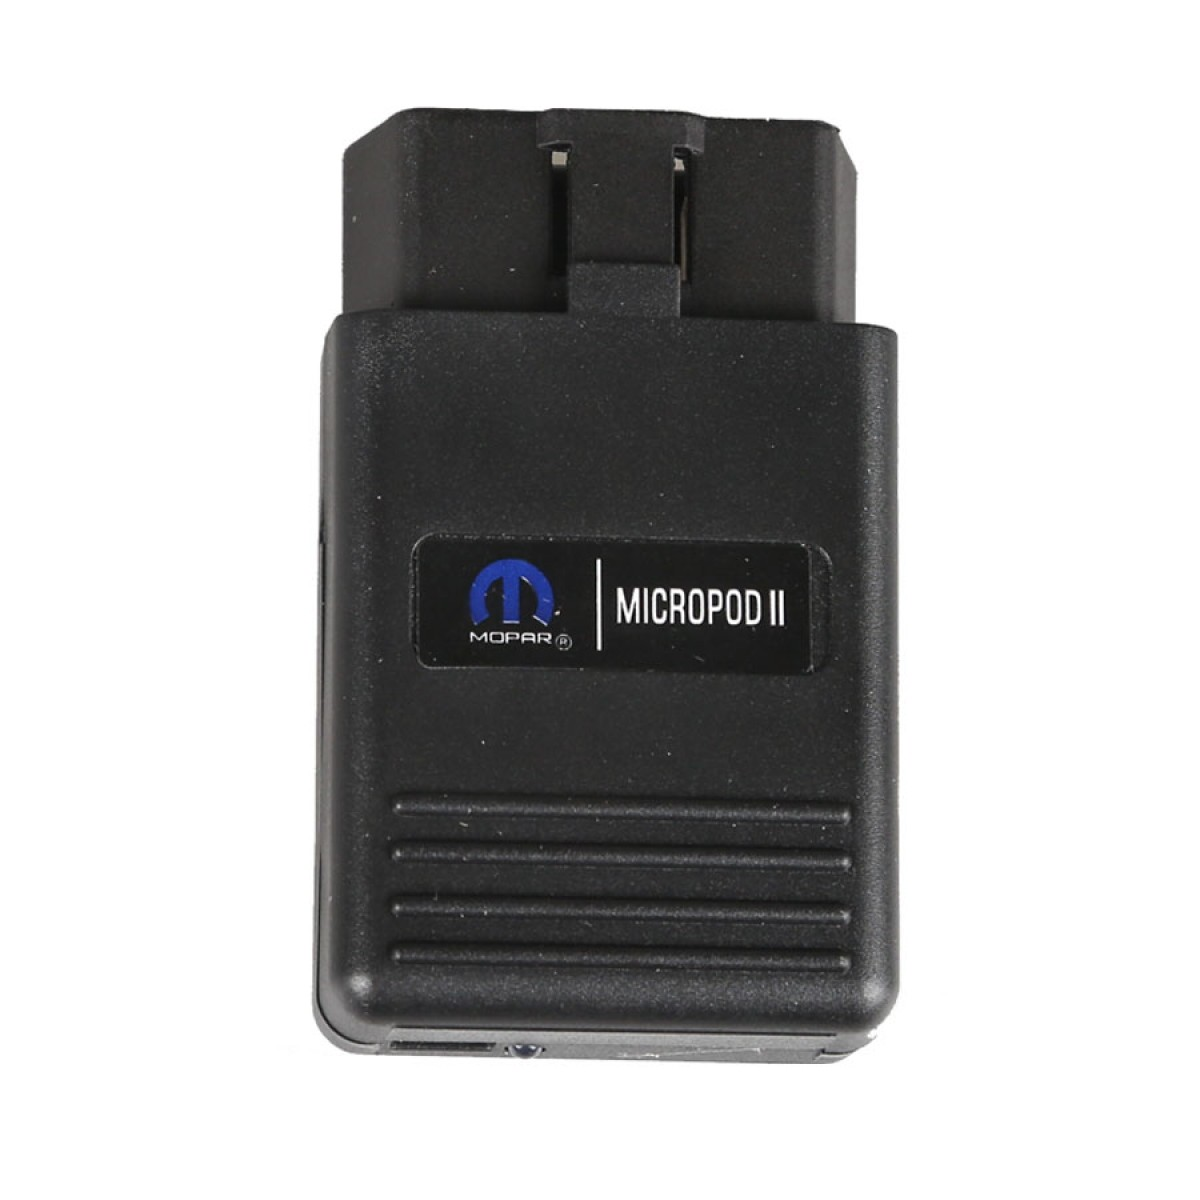 1 1 Chrysler Witech Micropod 2 Diagnostic Programming Tool For Chrysler Dodge Jeep Fiat Support Upgrading